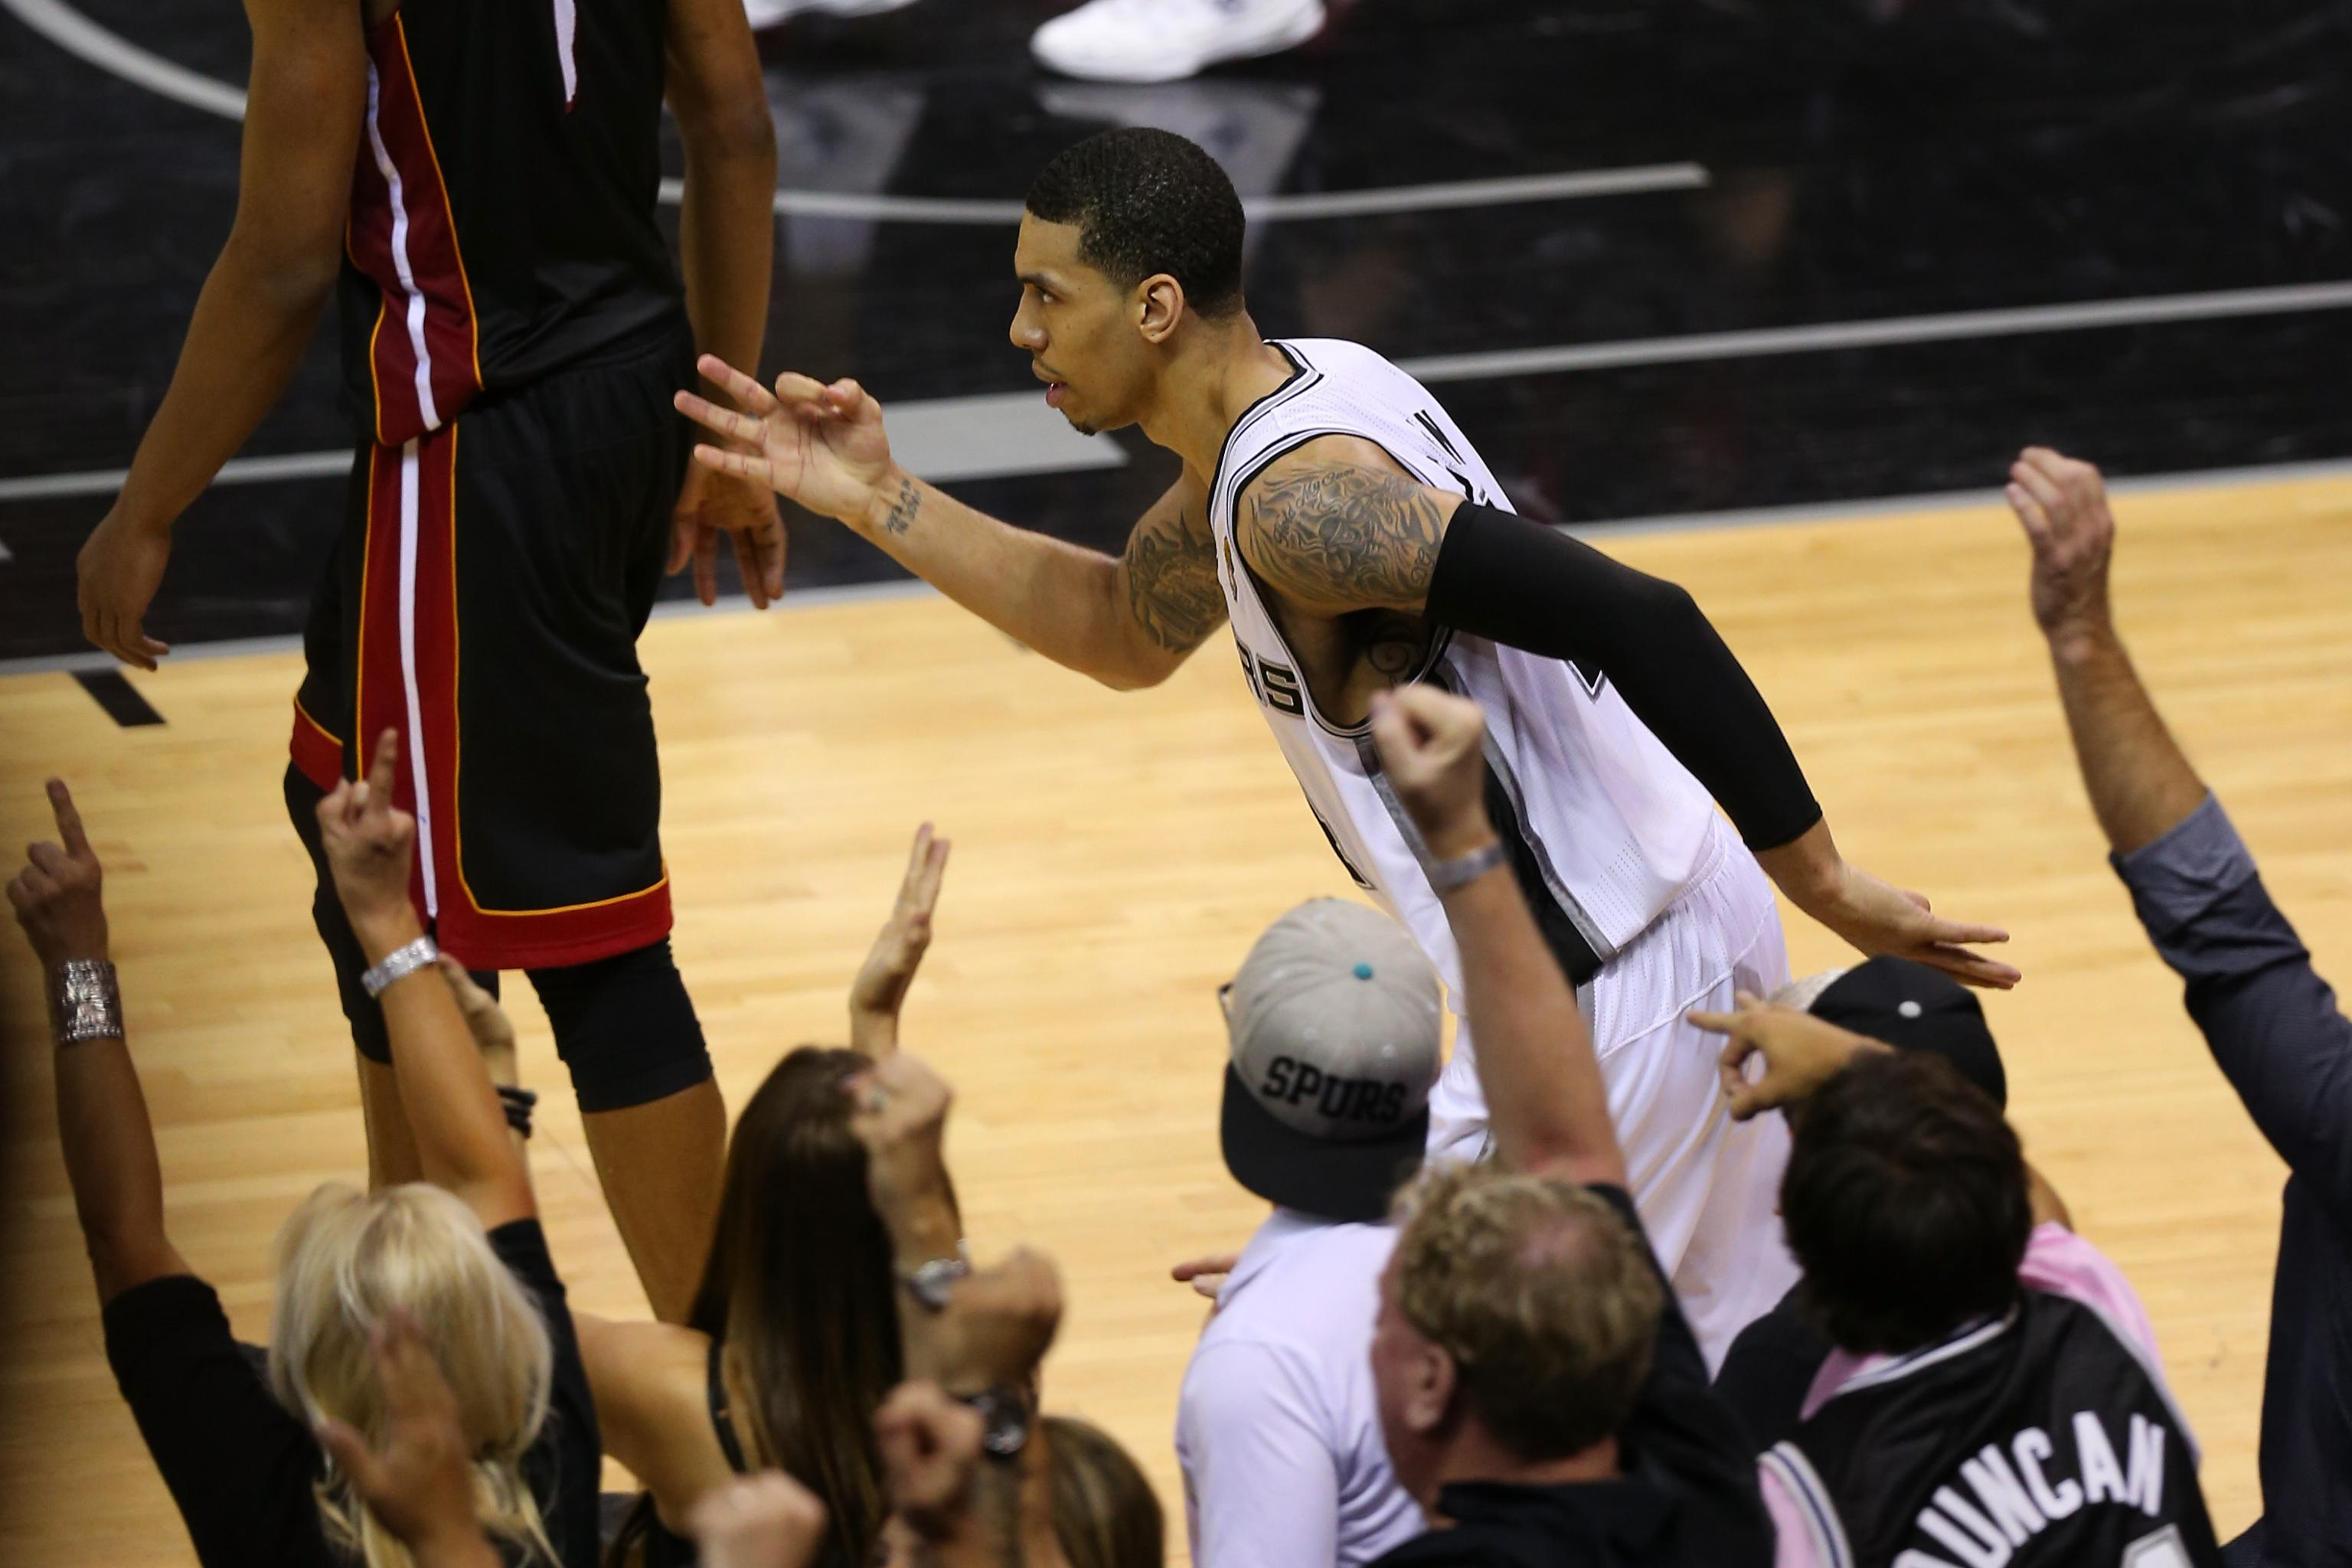 Former Cavs Gm Danny Green Sometimes Second Best In Practices Behind Lebron Bleacher Report Latest News Videos And Highlights